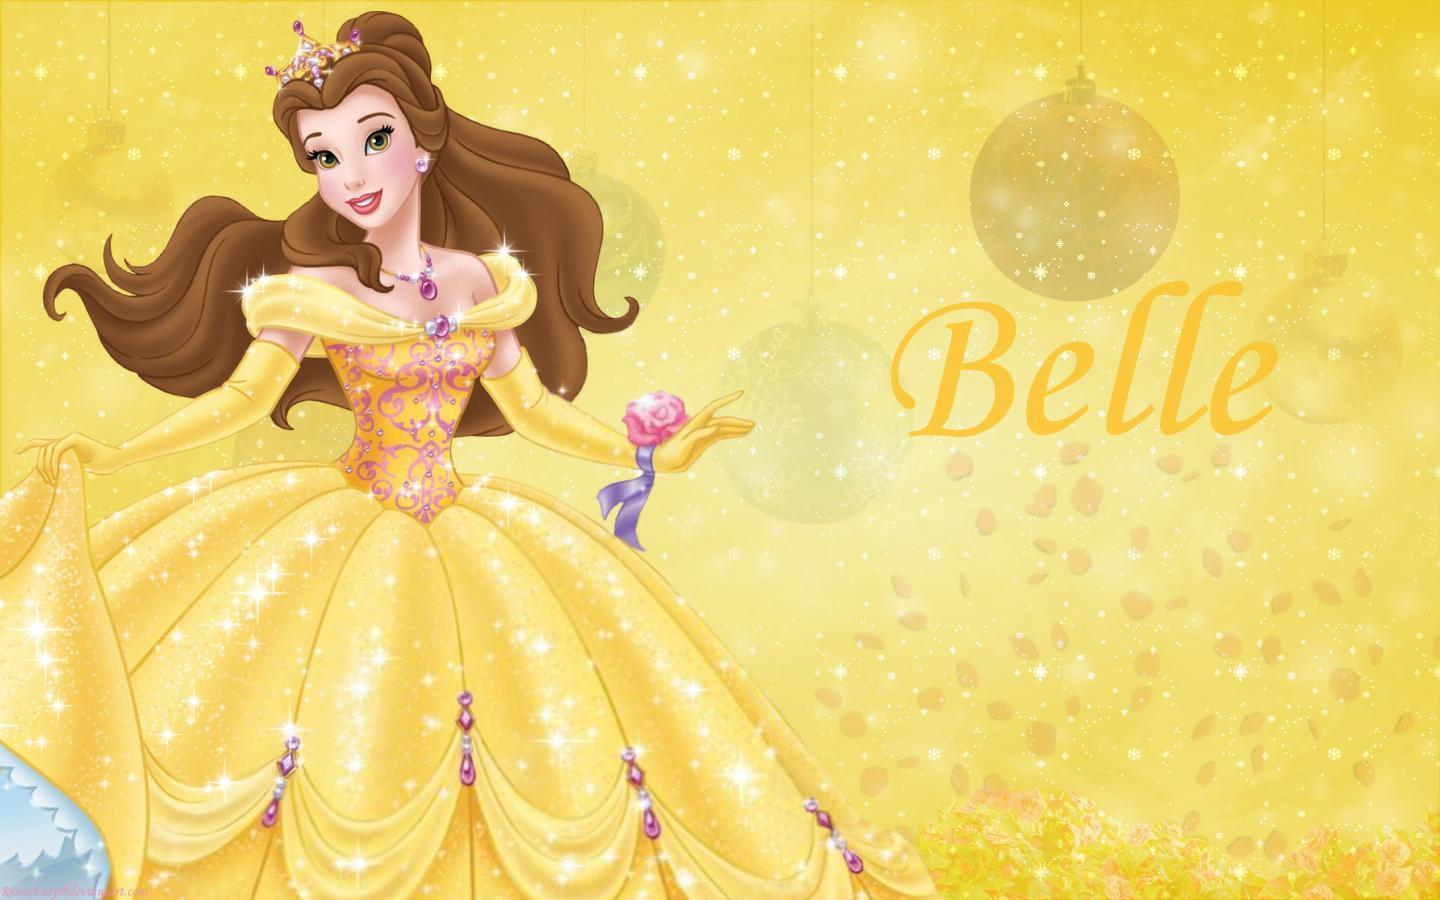 Princess belle wallpapers wallpaper cave for Belle image hd